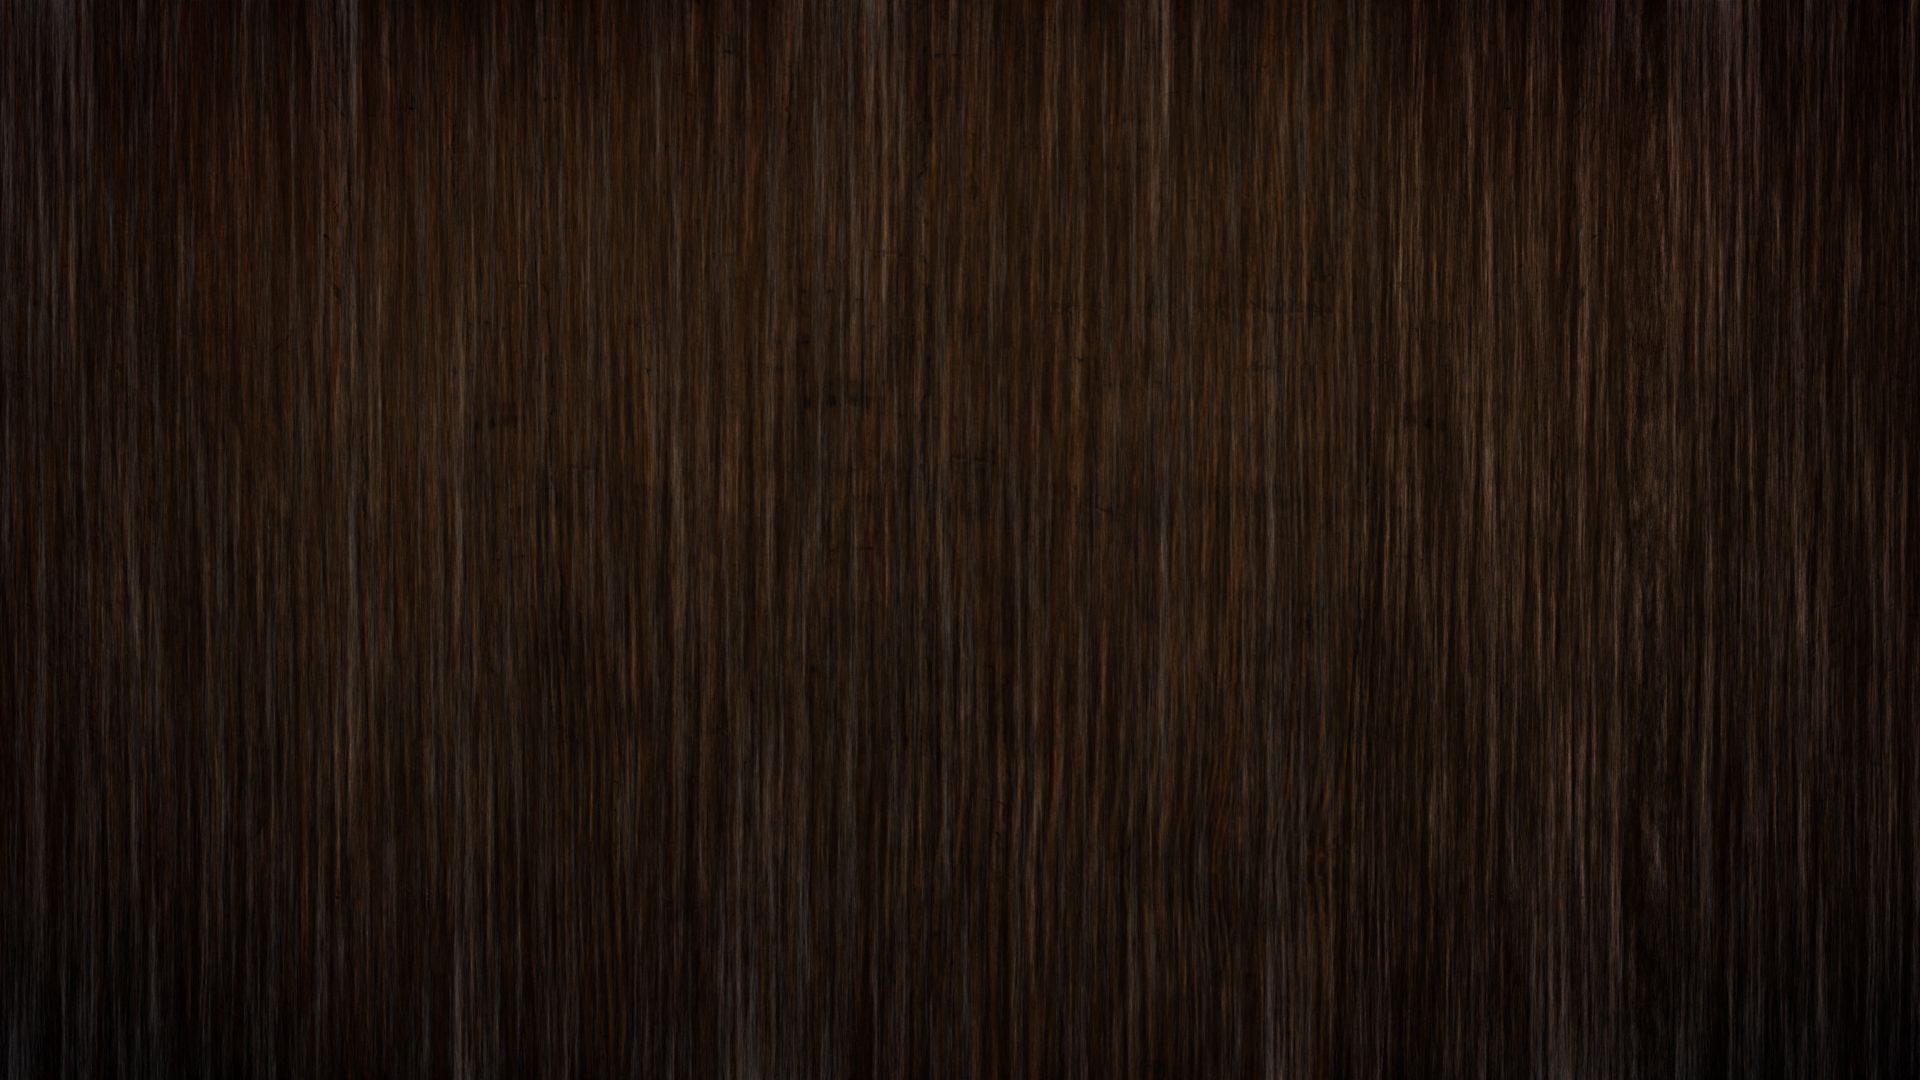 Dark Wood Texture Design Decorating 819455 Floor Ideas Design